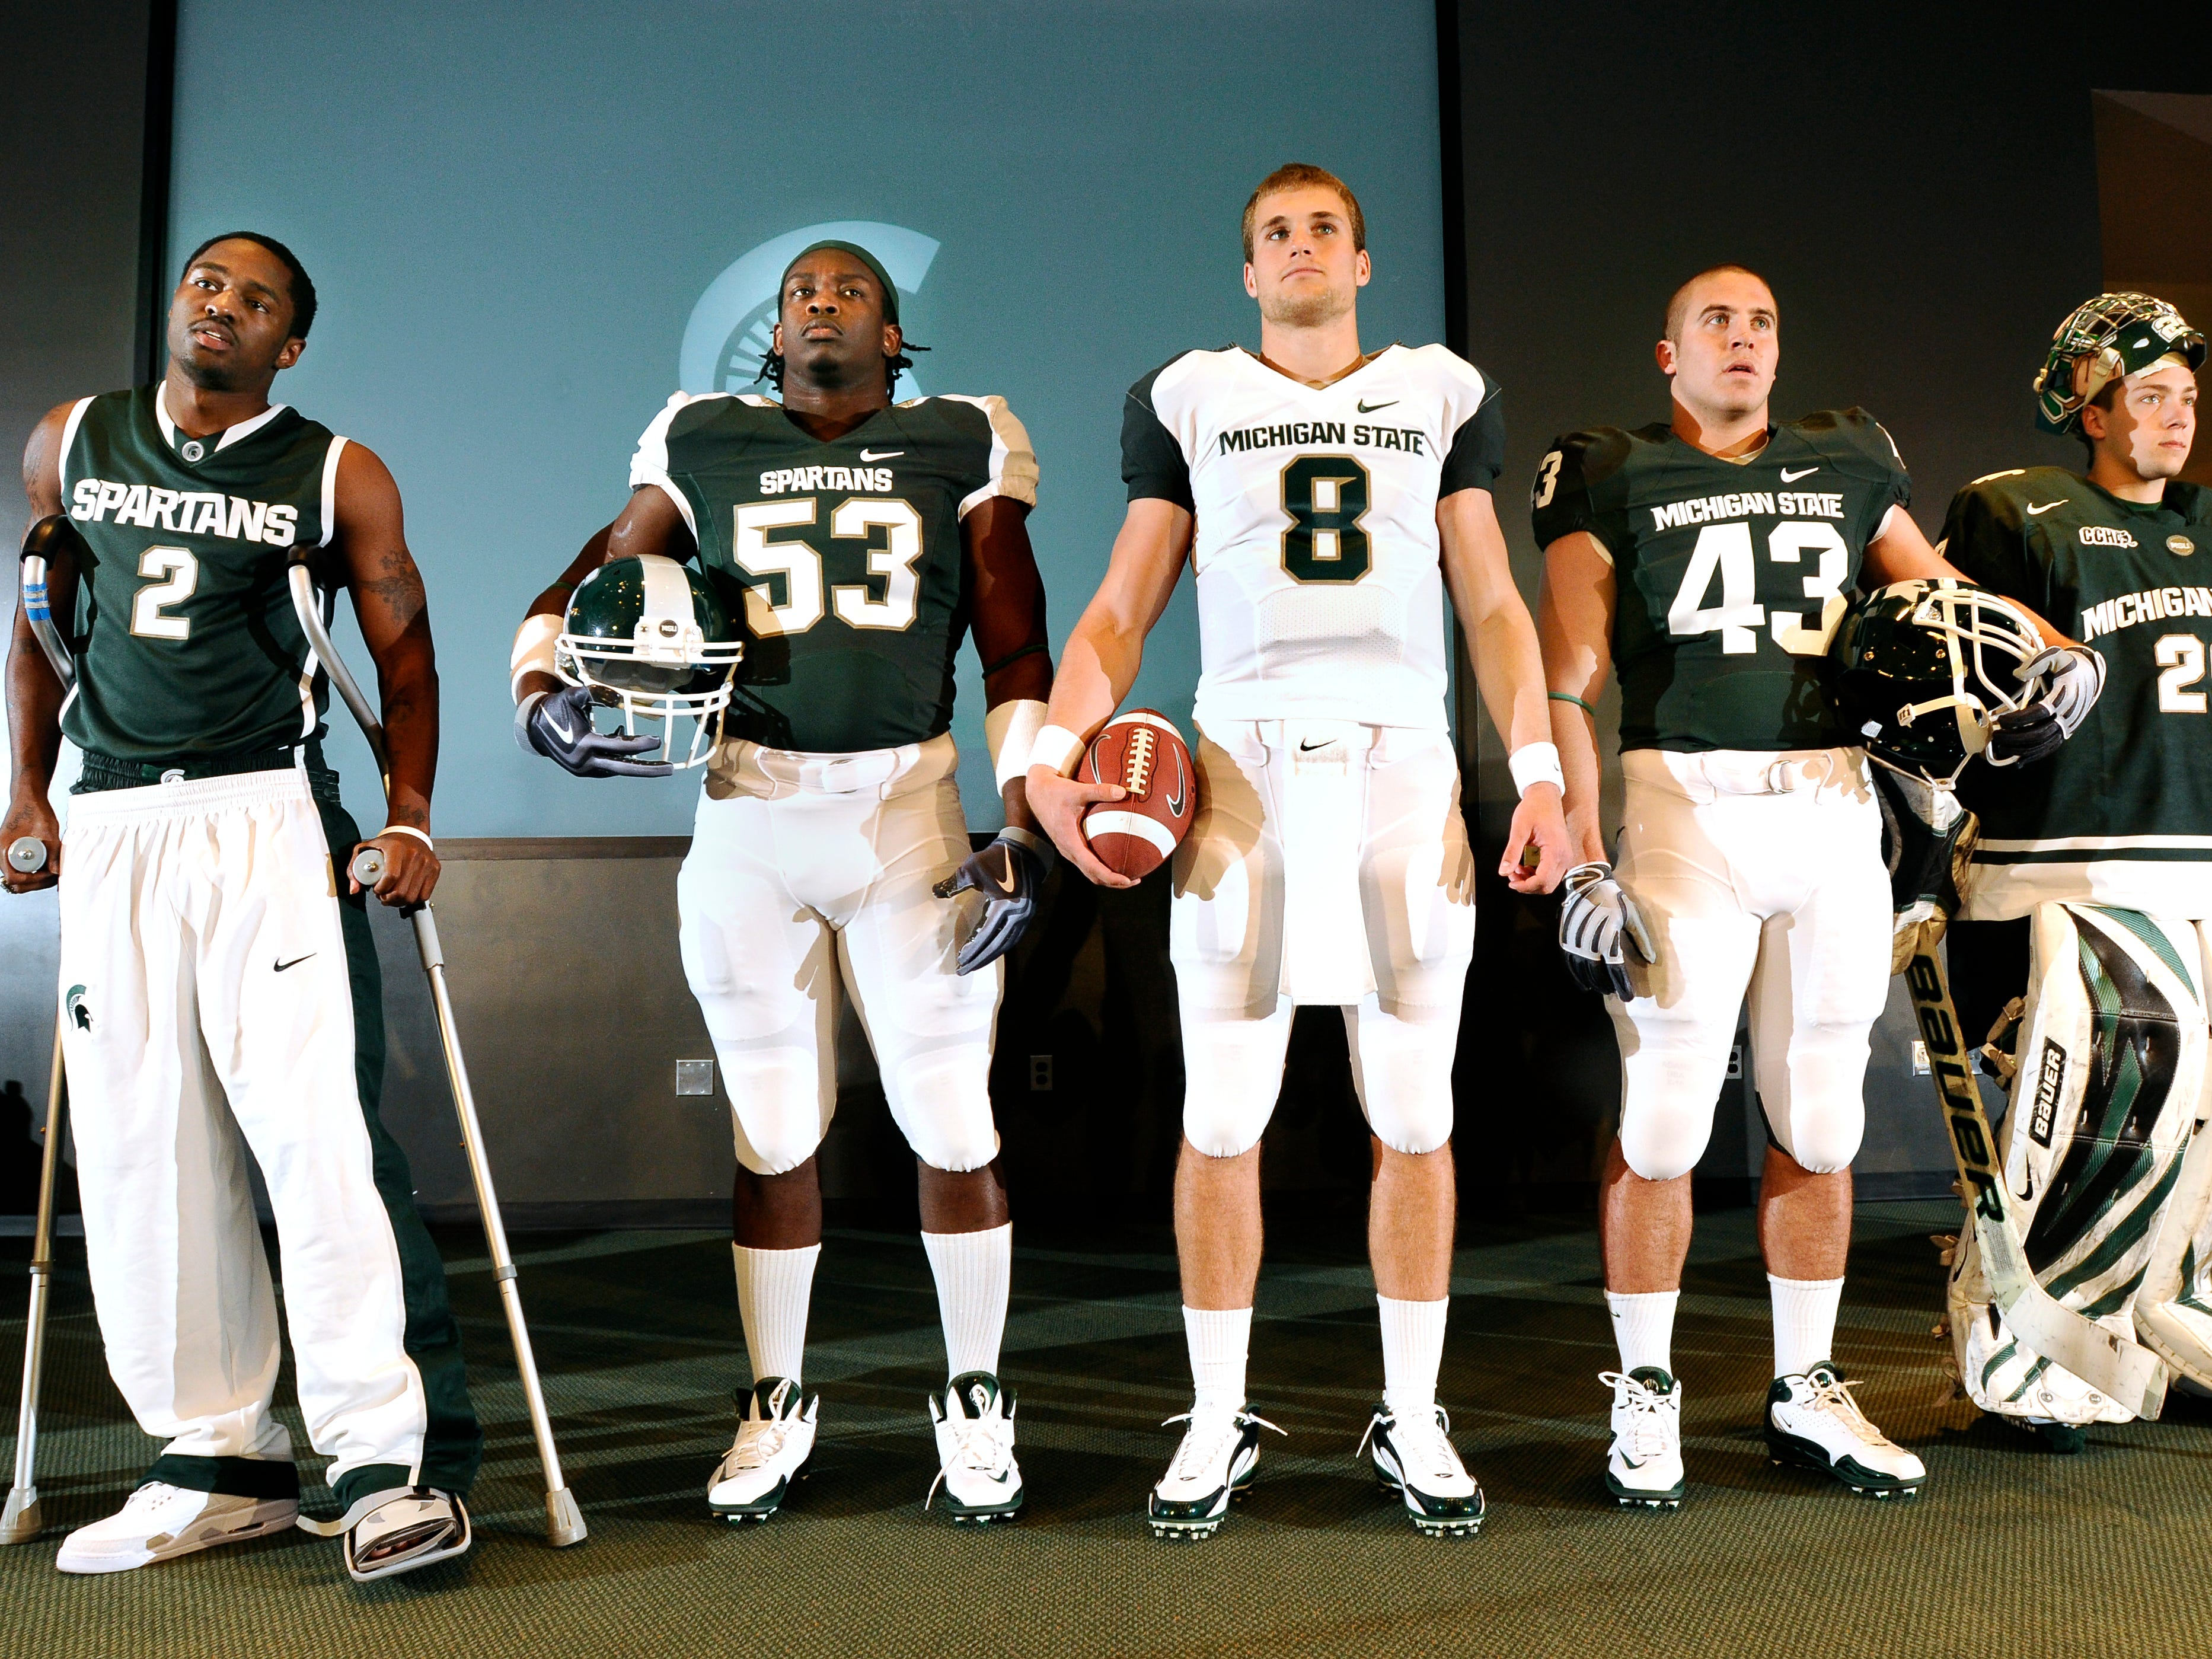 Michigan State athletes Kalin Lucas, Greg Jones, Kirk Cousins, Eric Gordon,  Drew Palmisano, left to right, are among the athletes showing their new uniforms during a news conference unveiling MSU's new branding and Identity Program in East  Lansing Friday 4/23/2010.